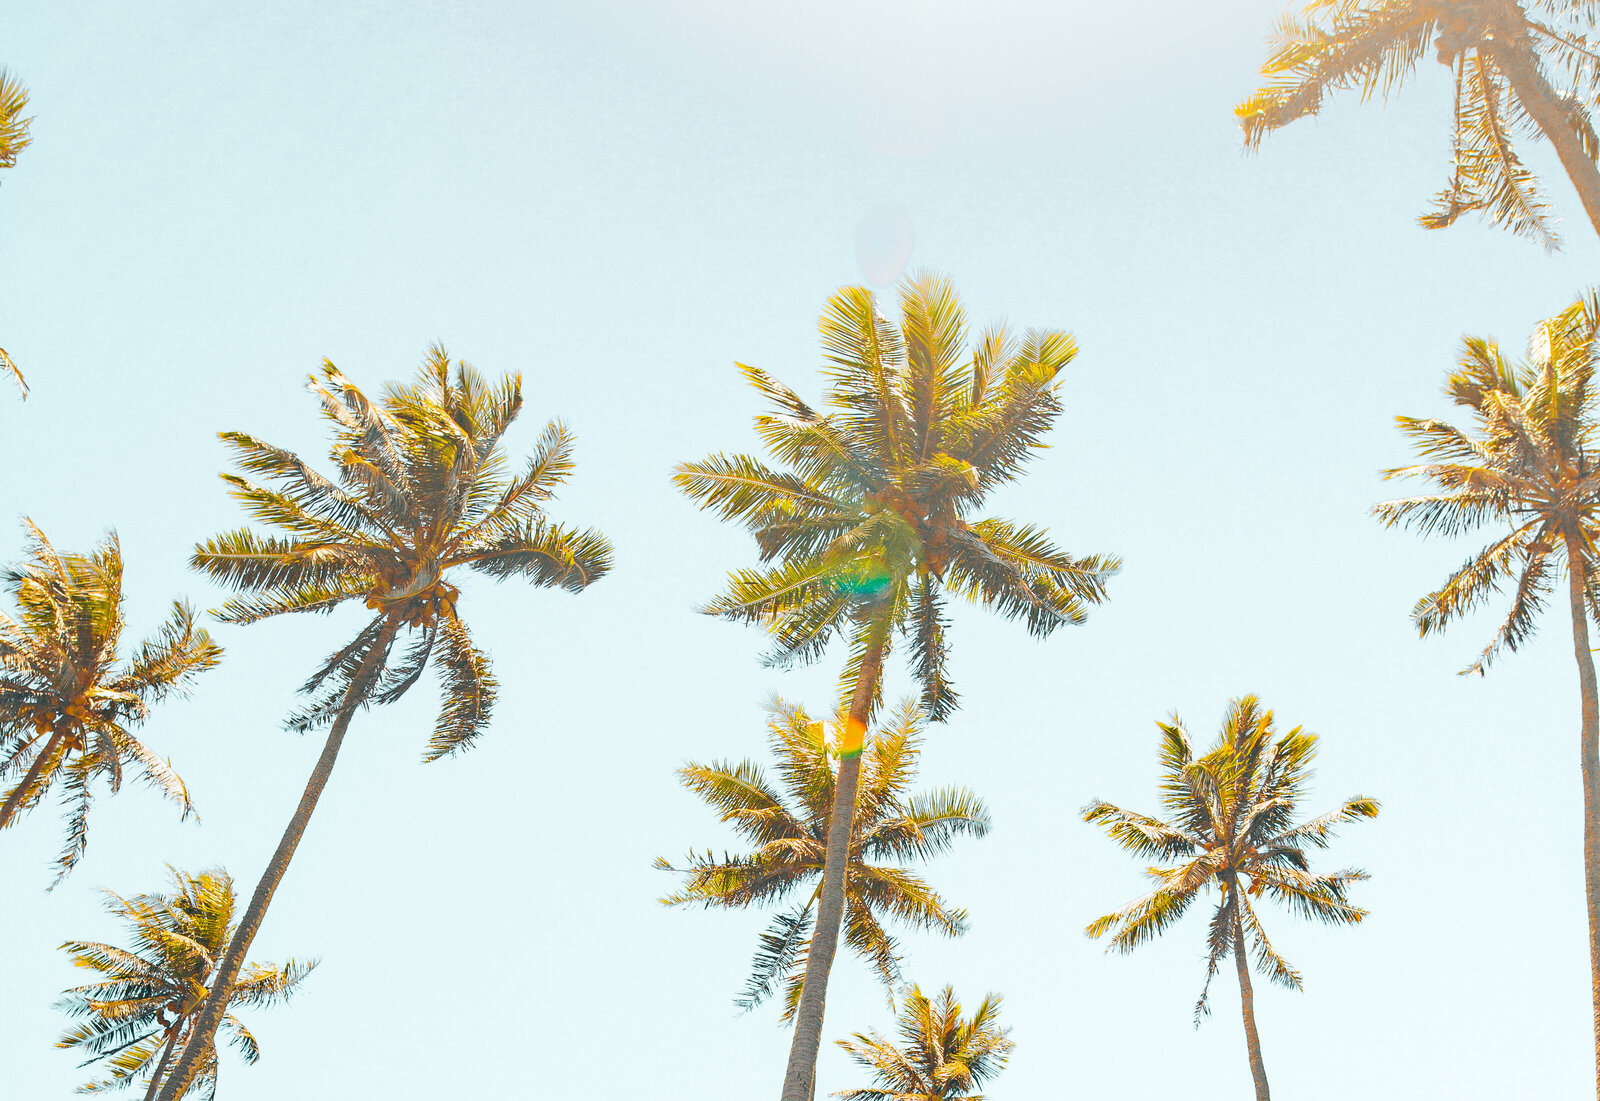 kellyyhill-palm-trees-hawaii